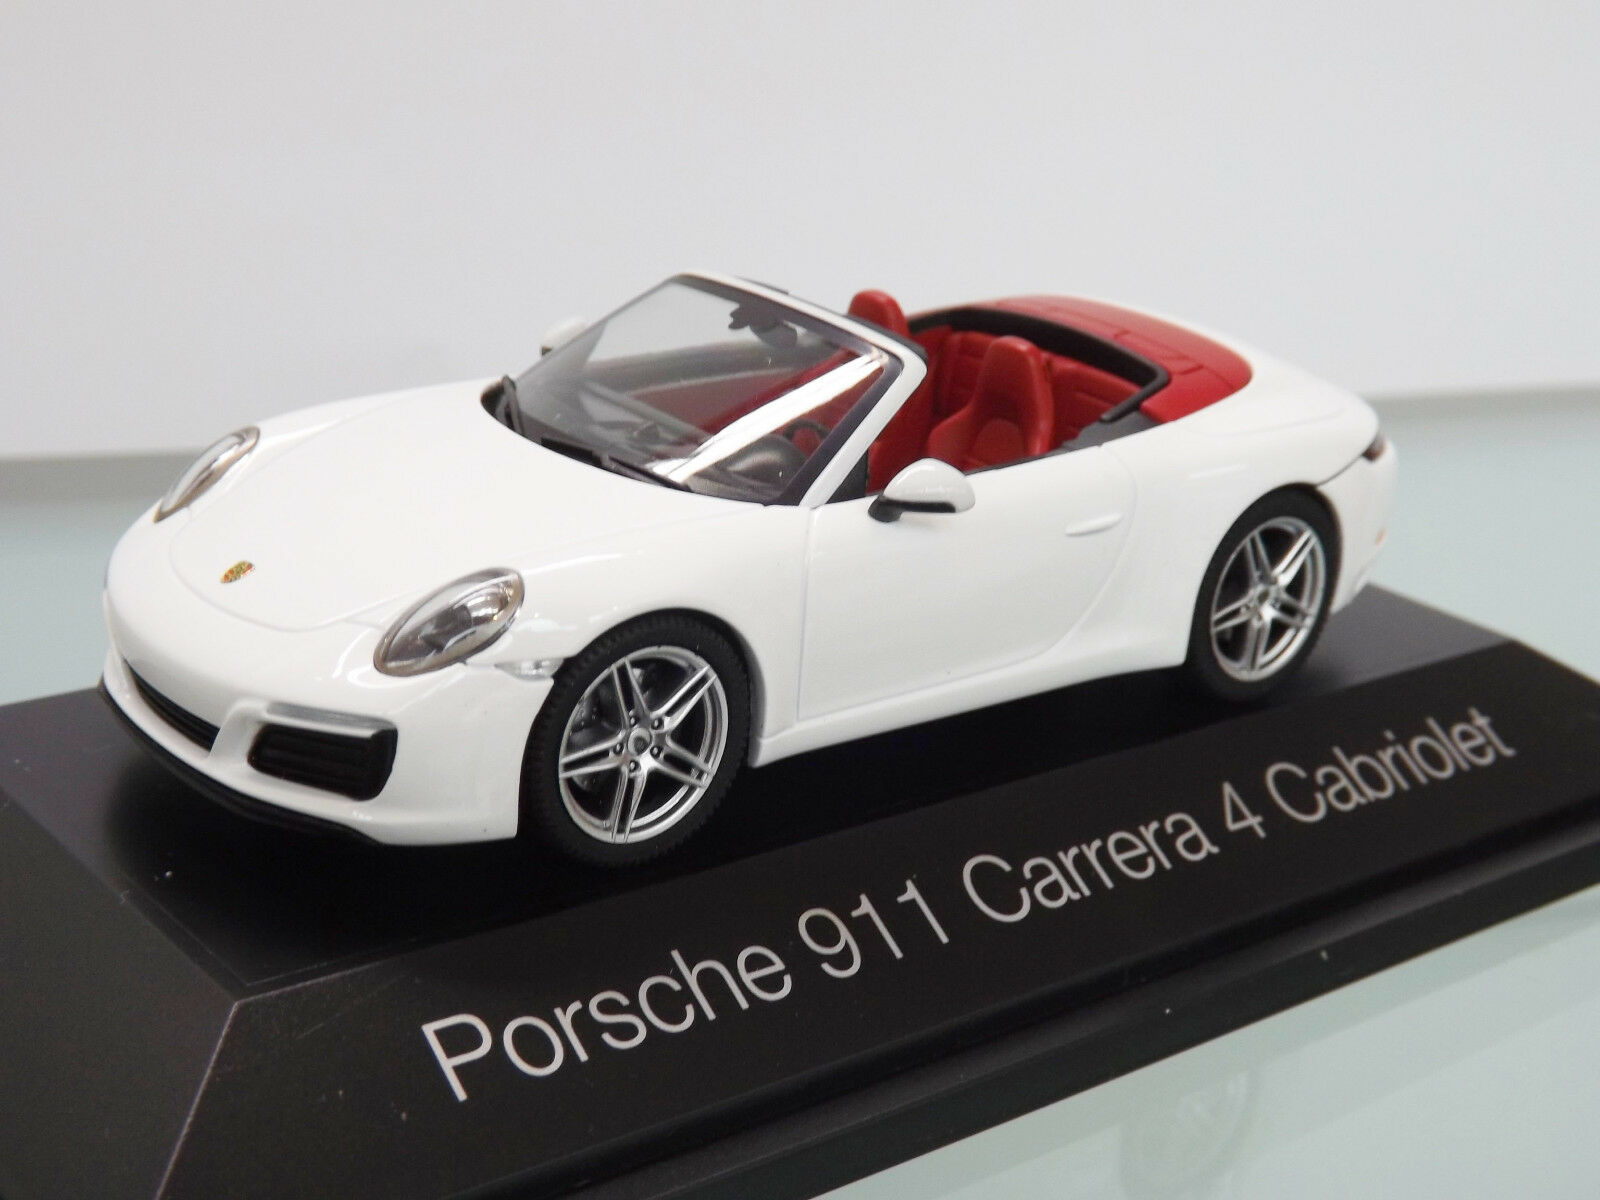 Herpa 071116 - 1 43 - Porsche 911 Carrera 4 Cabriolet, Carrara White Metal NEW